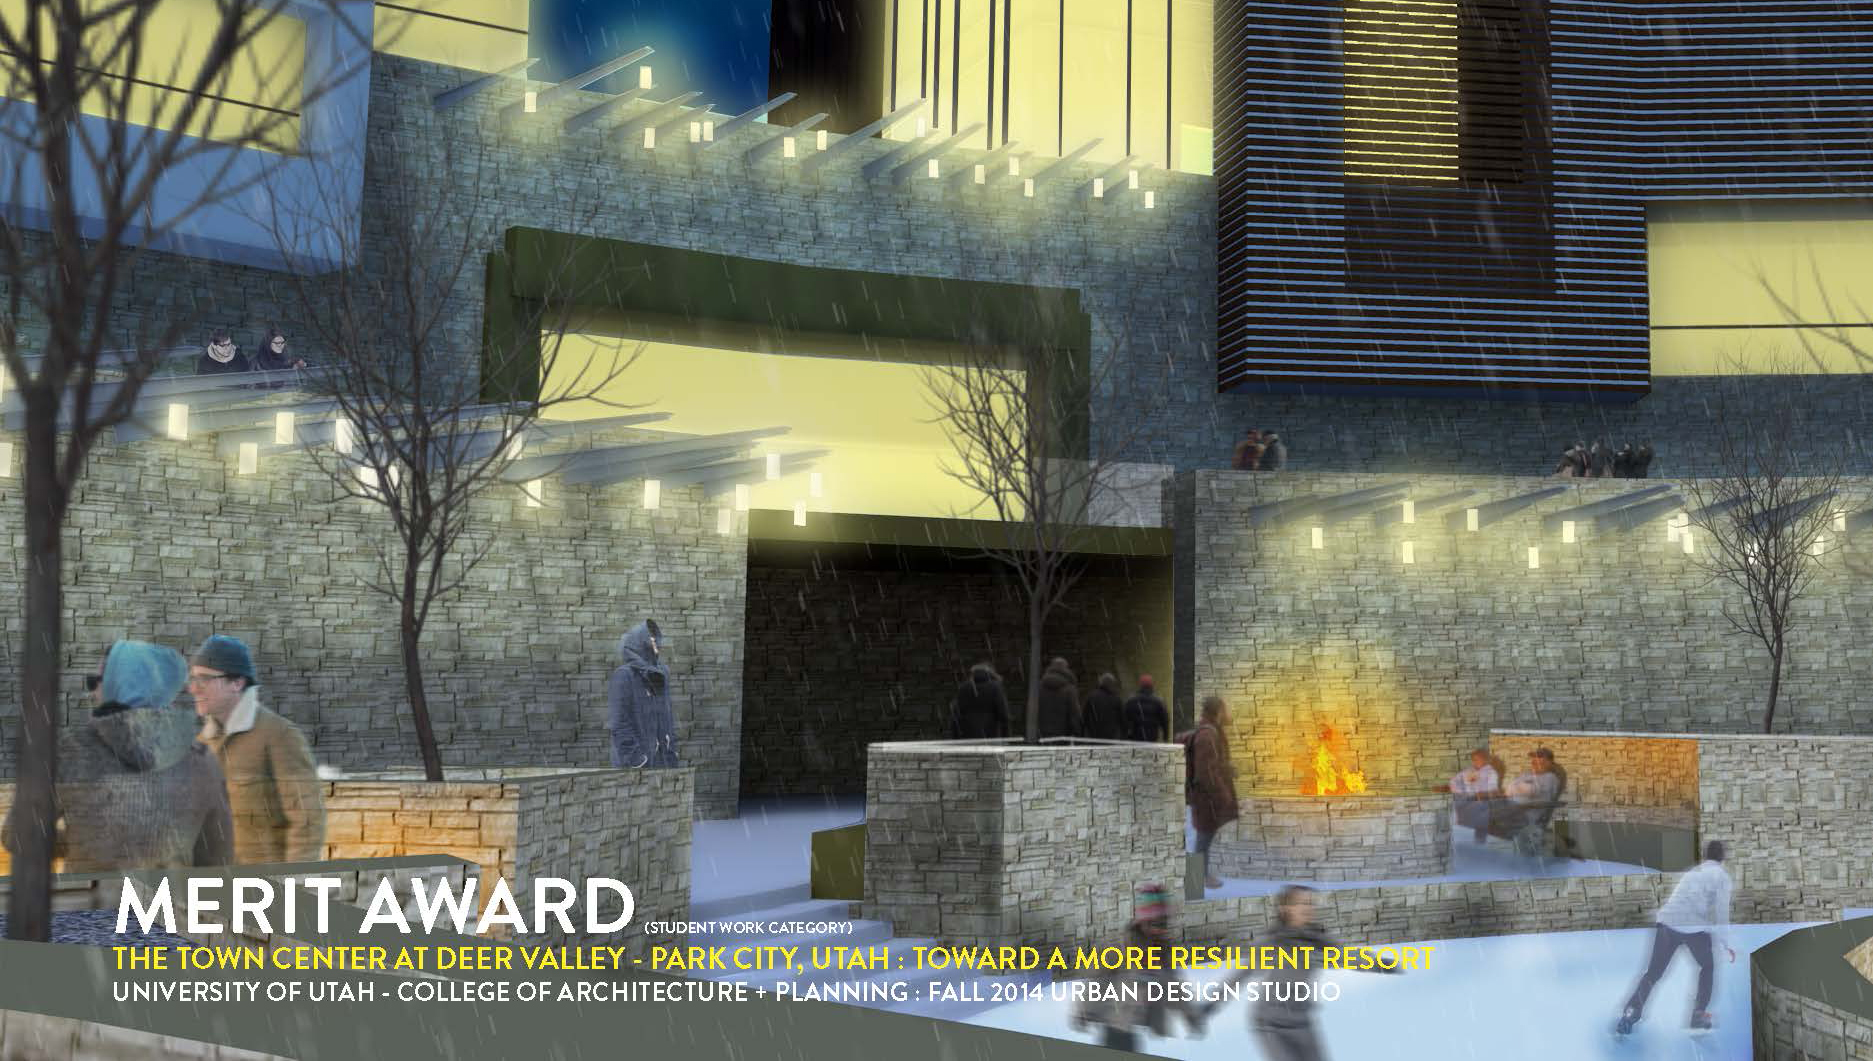 The 2015 Urban Design Utah Merit Award Was Presented To The University Of  Utah College Of Architecture + Planning For The Fall 2014 Urban Design  Studio U201cThe ...